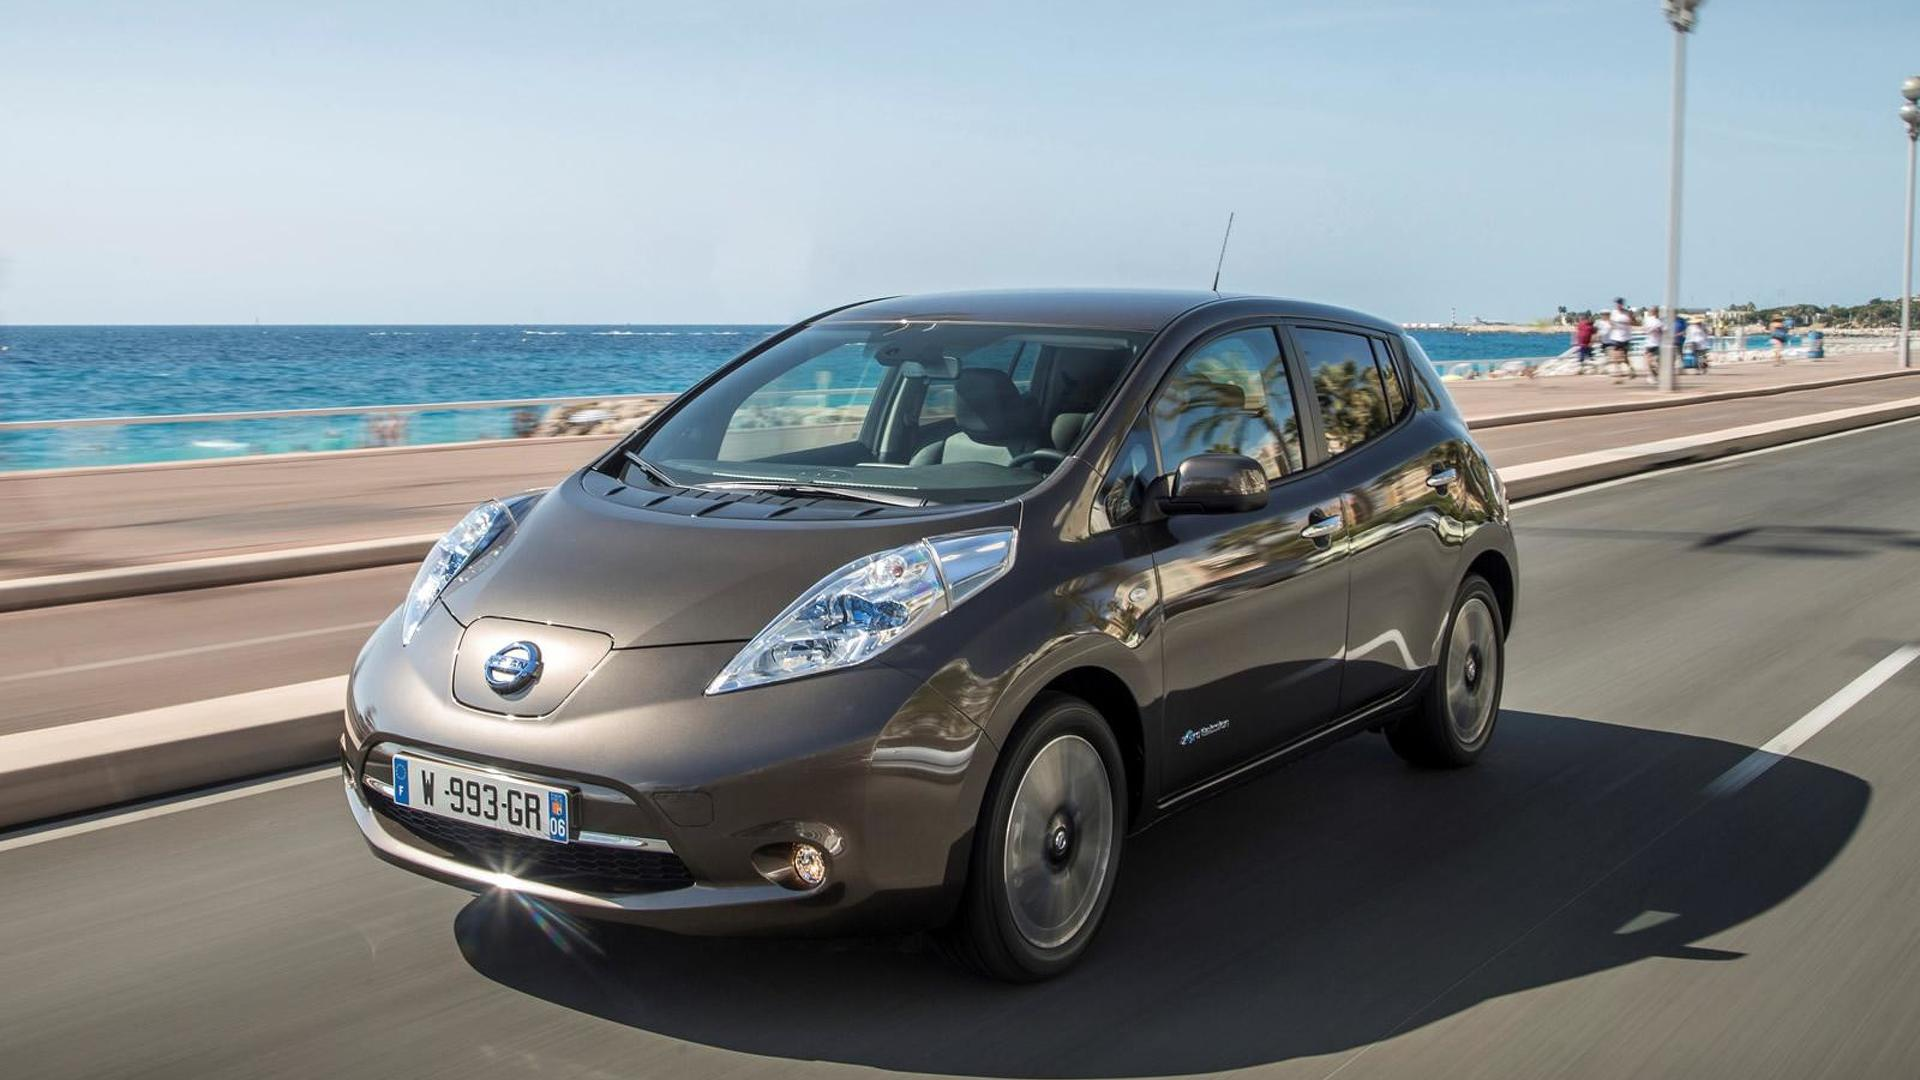 car photos a is indicate micra electric at new an of the it bn or wsj blows styling detroit leaf market twitter nissan existing mass across show auto january in leaked nissans articles